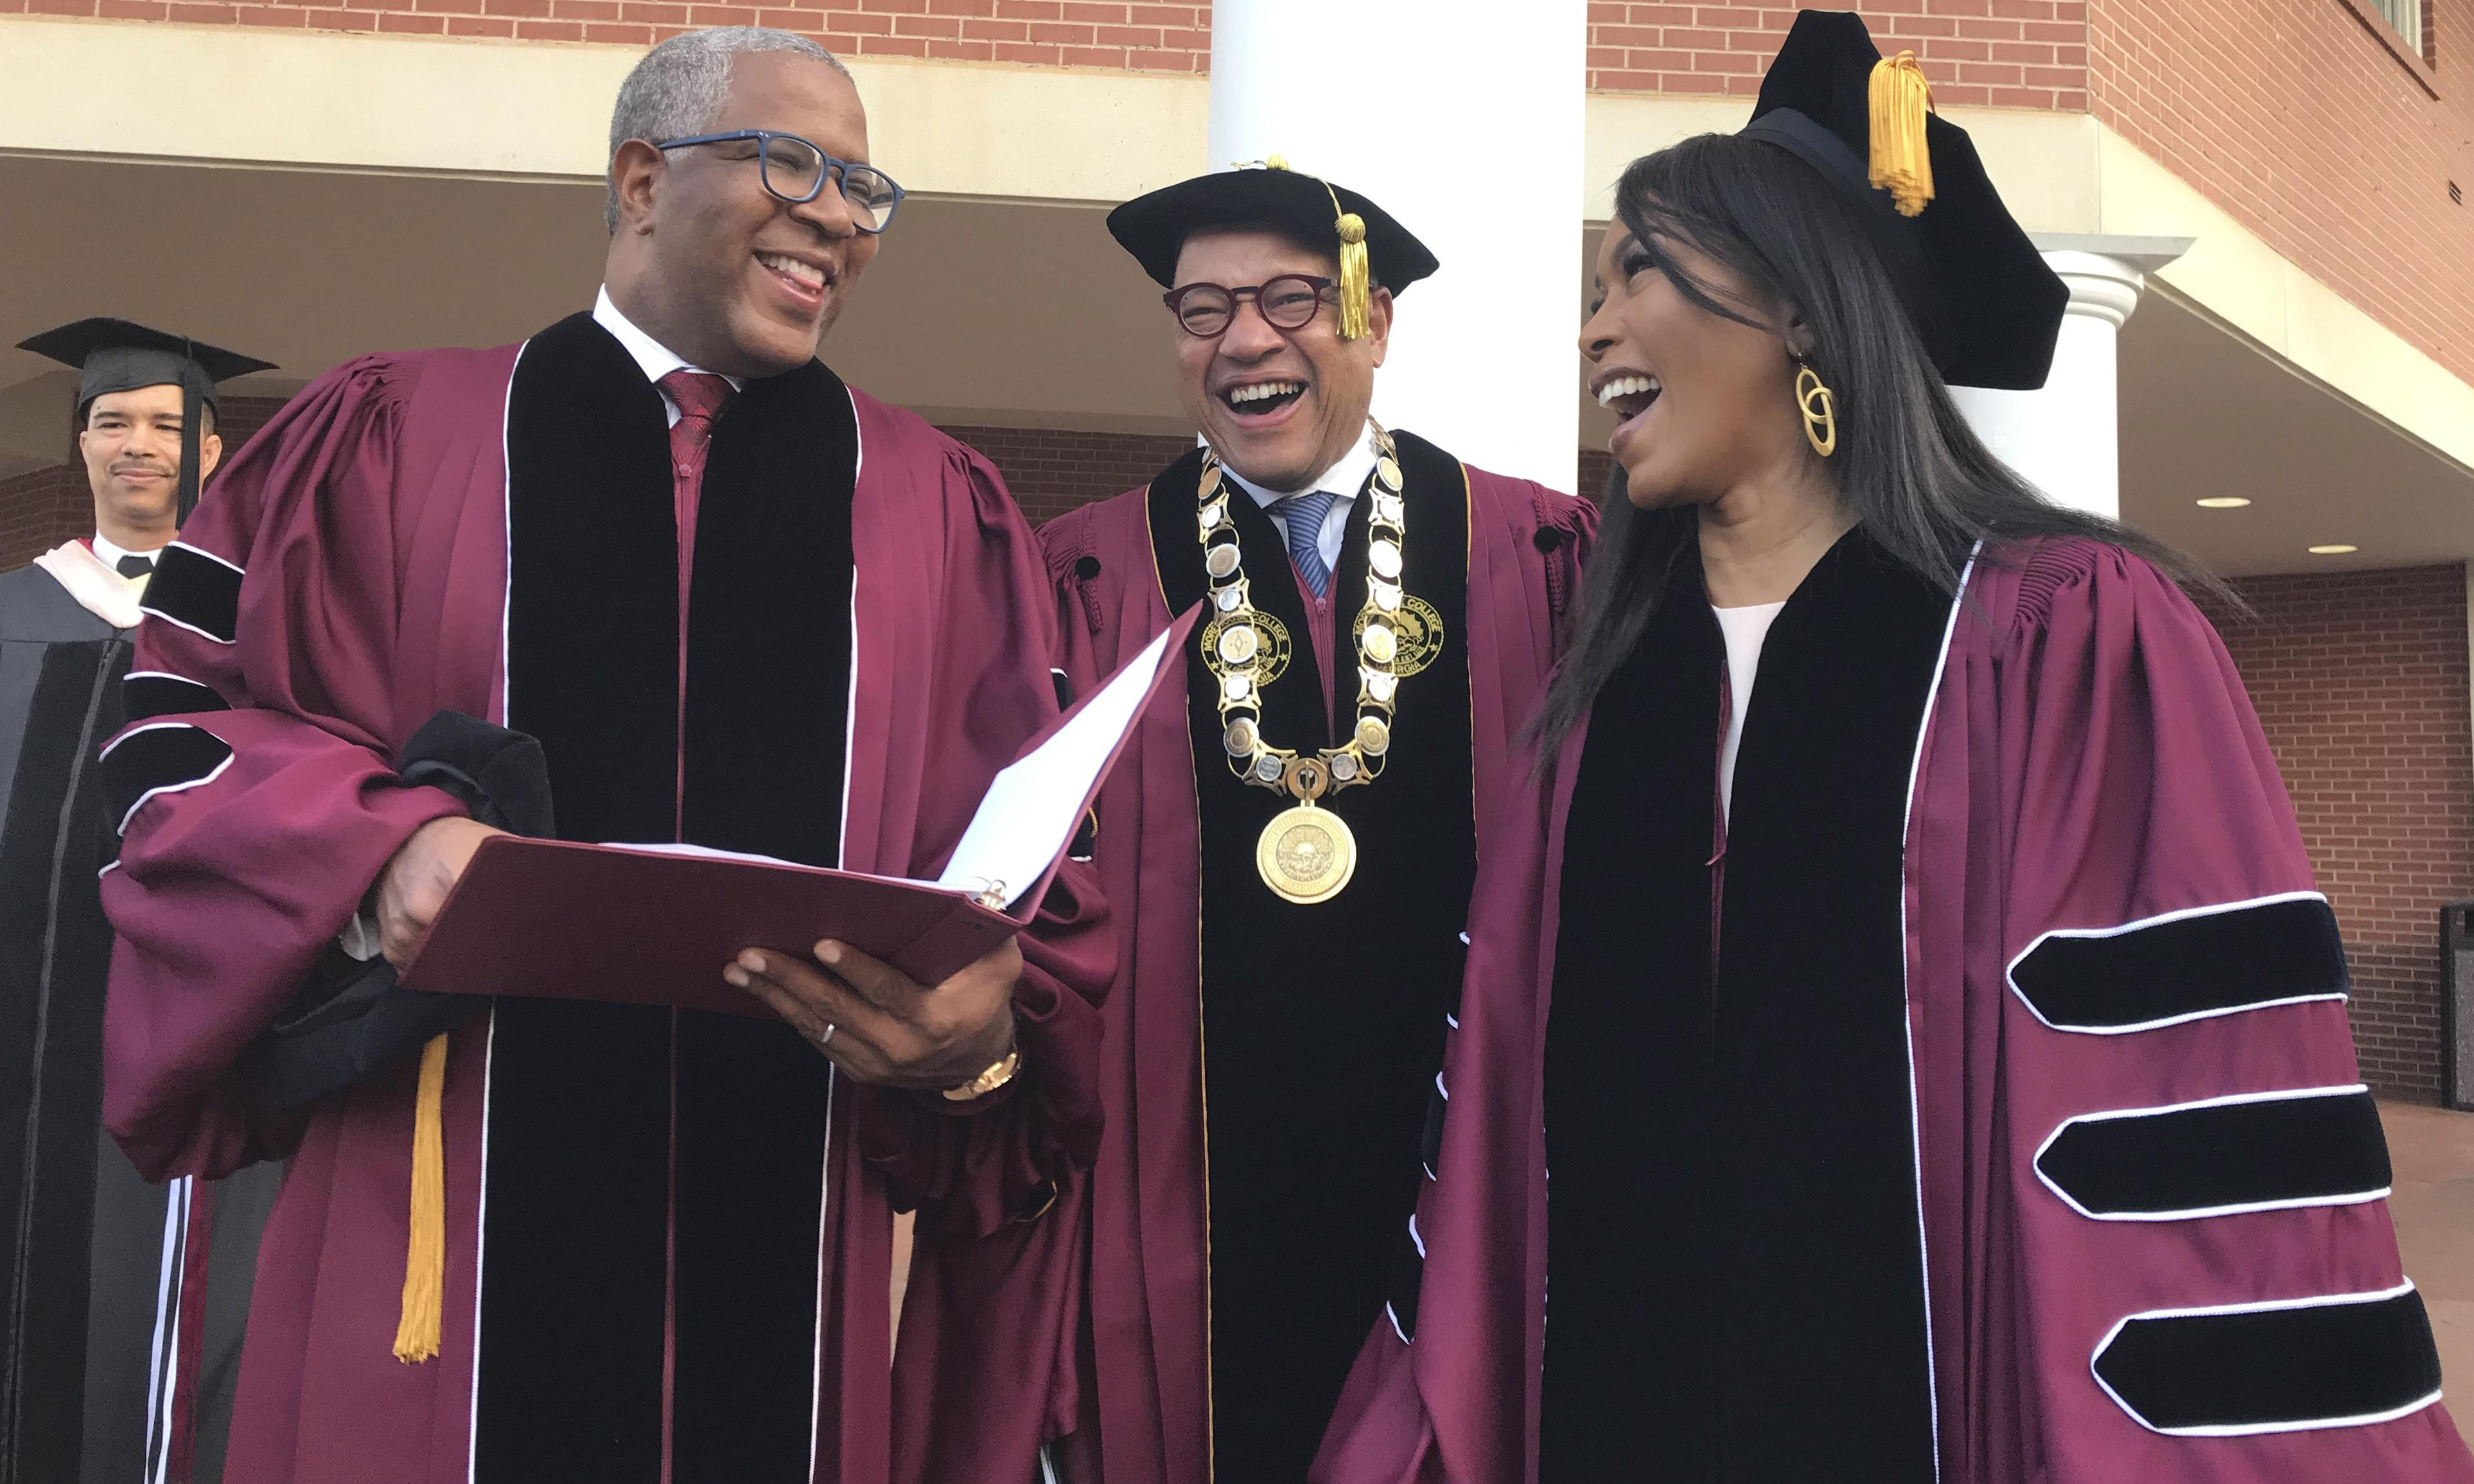 Billionaire pledges to pay student debt for 2019 class at historic black college